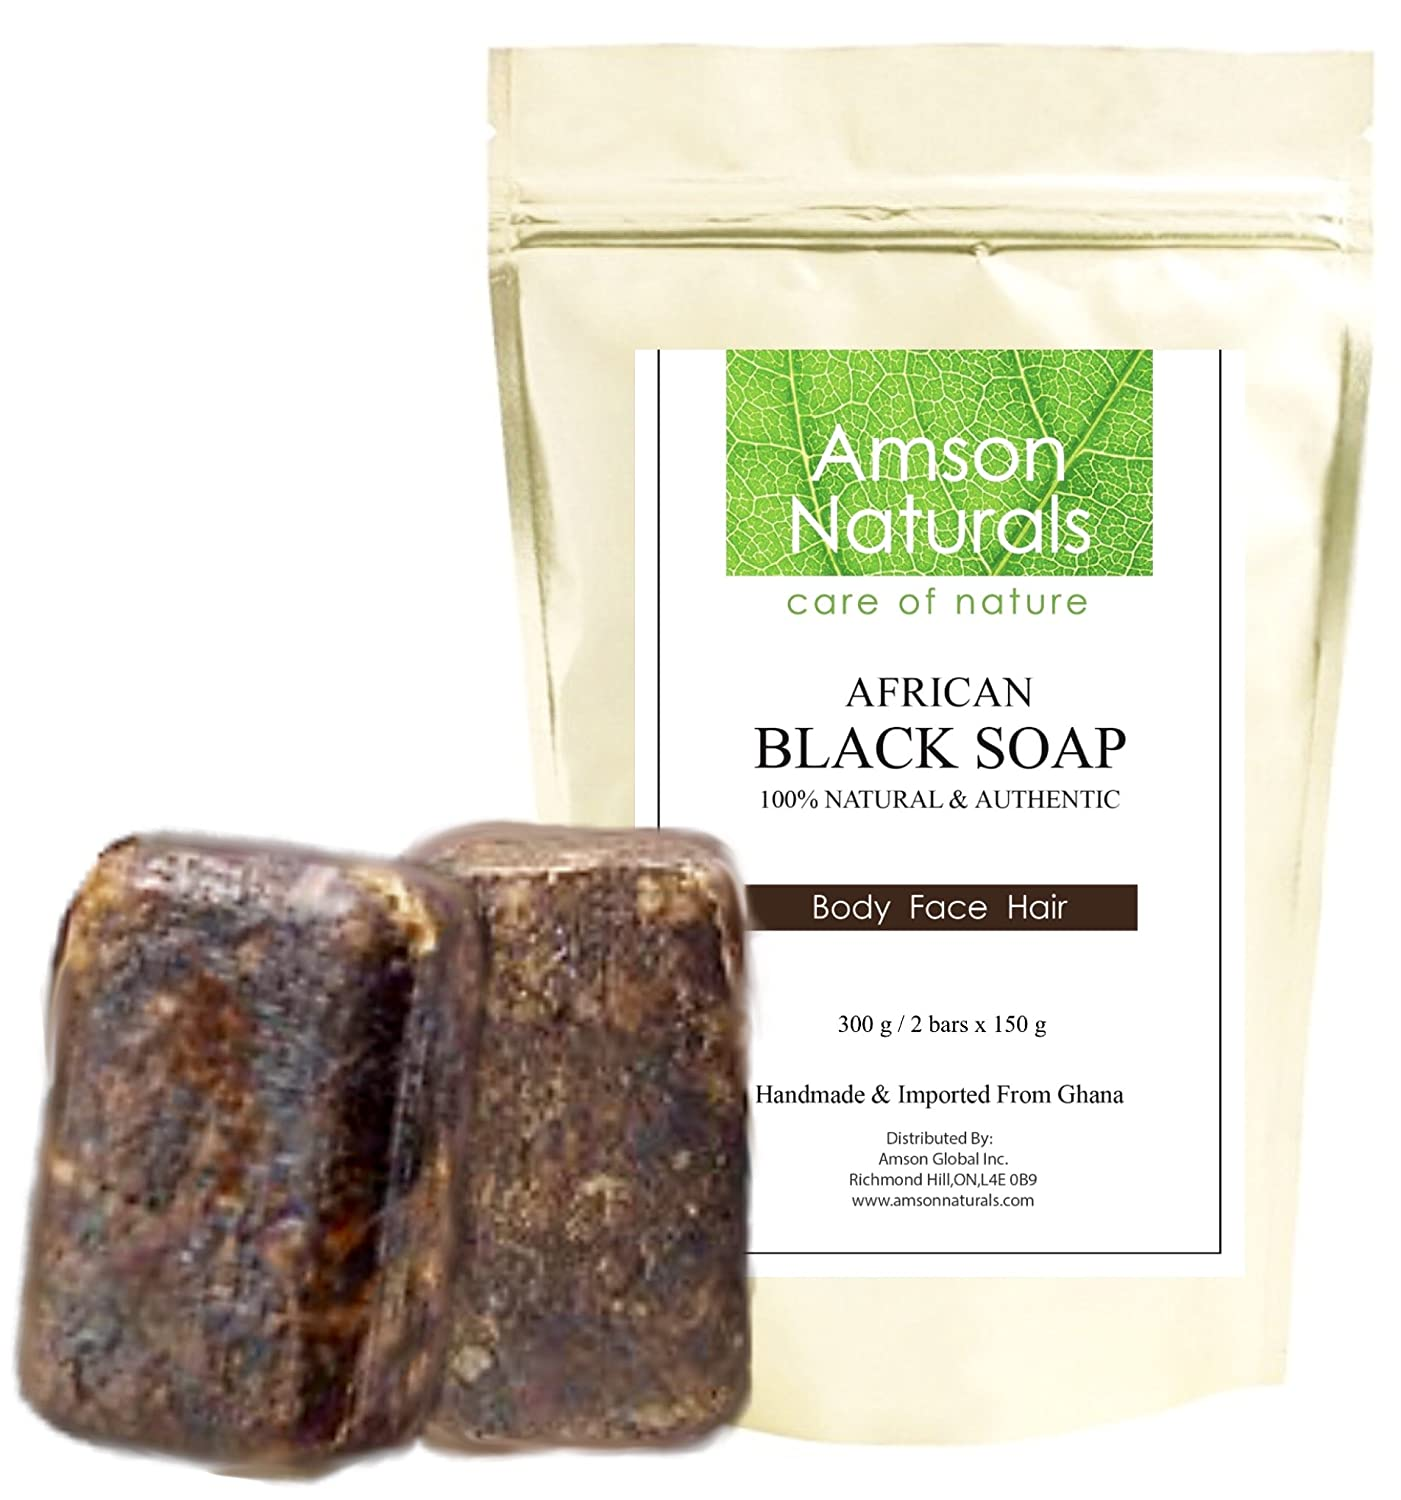 AFRICAN BLACK SOAP (0.7lb / 300g - 2 bars x 150 grams)-by Amson Naturals -100% Natural Pure Authentic Traditionally Handmade in Africa (Ghana) - for Body Face Hair.